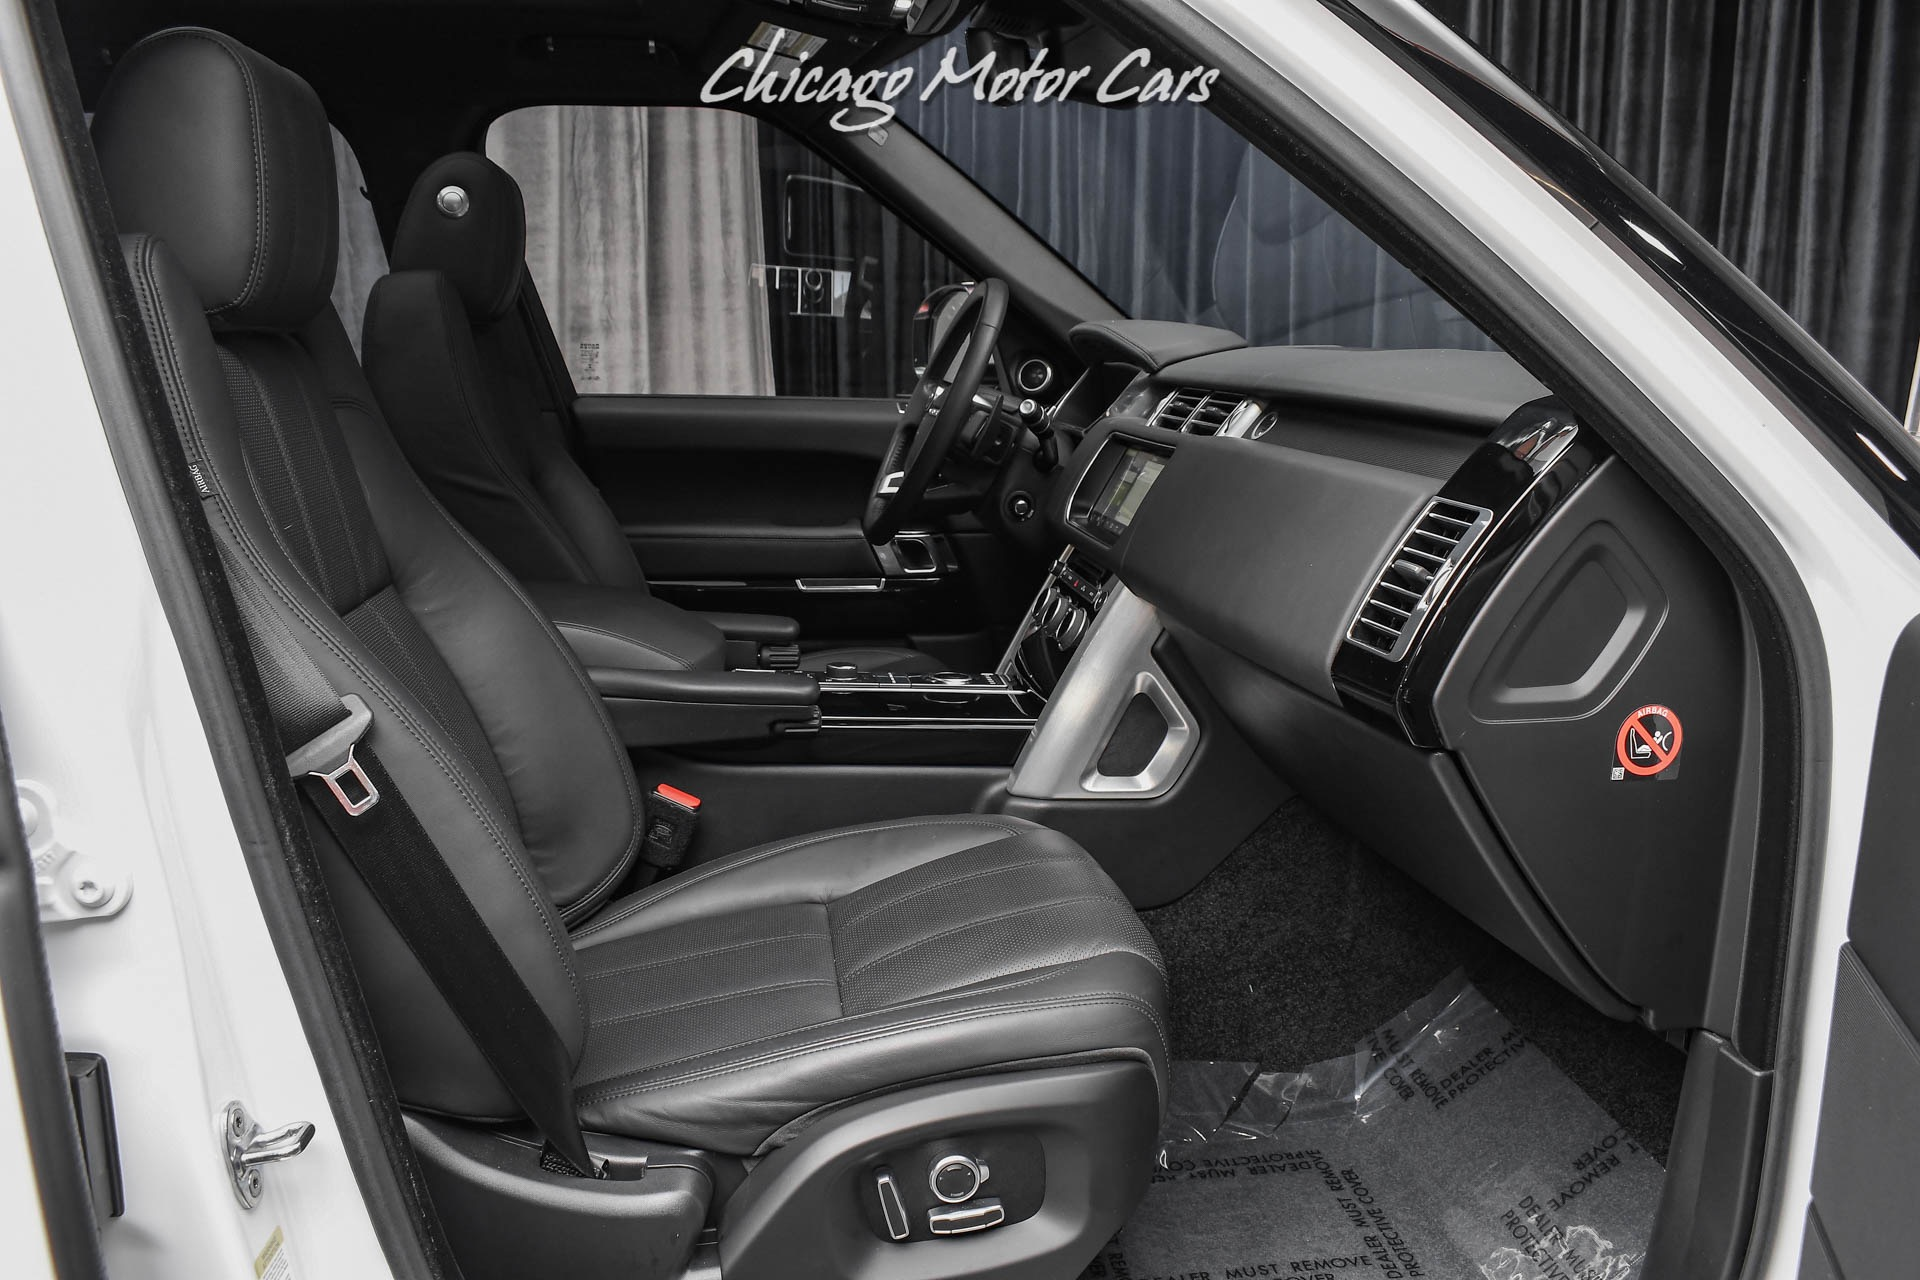 Used-2017-Land-Rover-Range-Rover-HSE-SUV-24-ANRKY-WHEELS-MERIDIAN-PREMIUM-AUDIO-BLACK-CONTRAST-ROOF